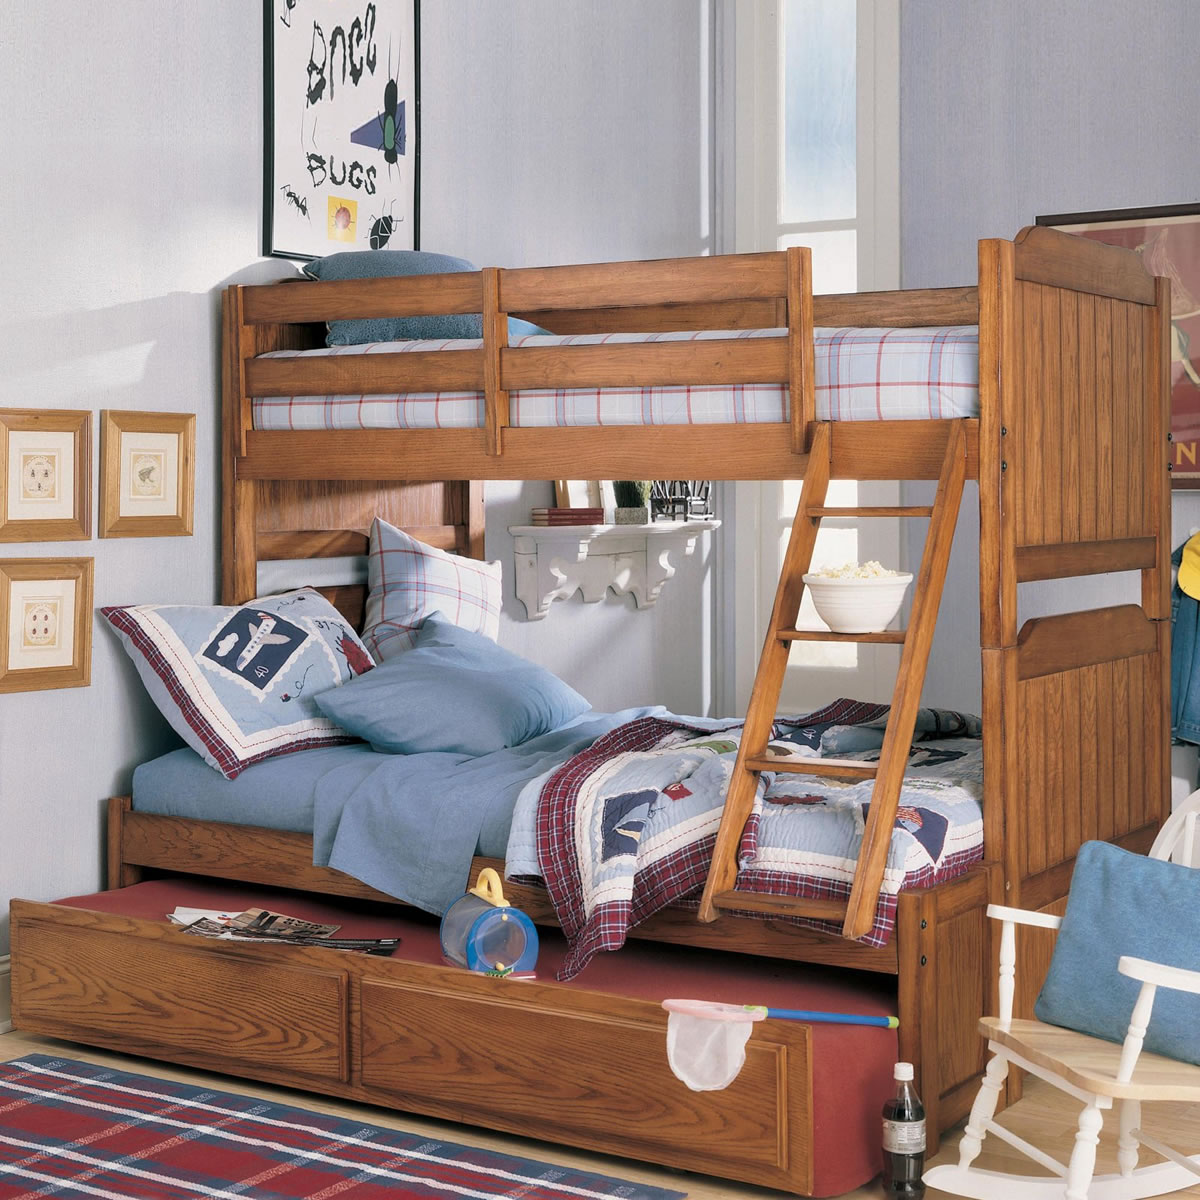 full colors prod wid qlt dorel twin hei home bed furnishings beds over bunk p brady multiple